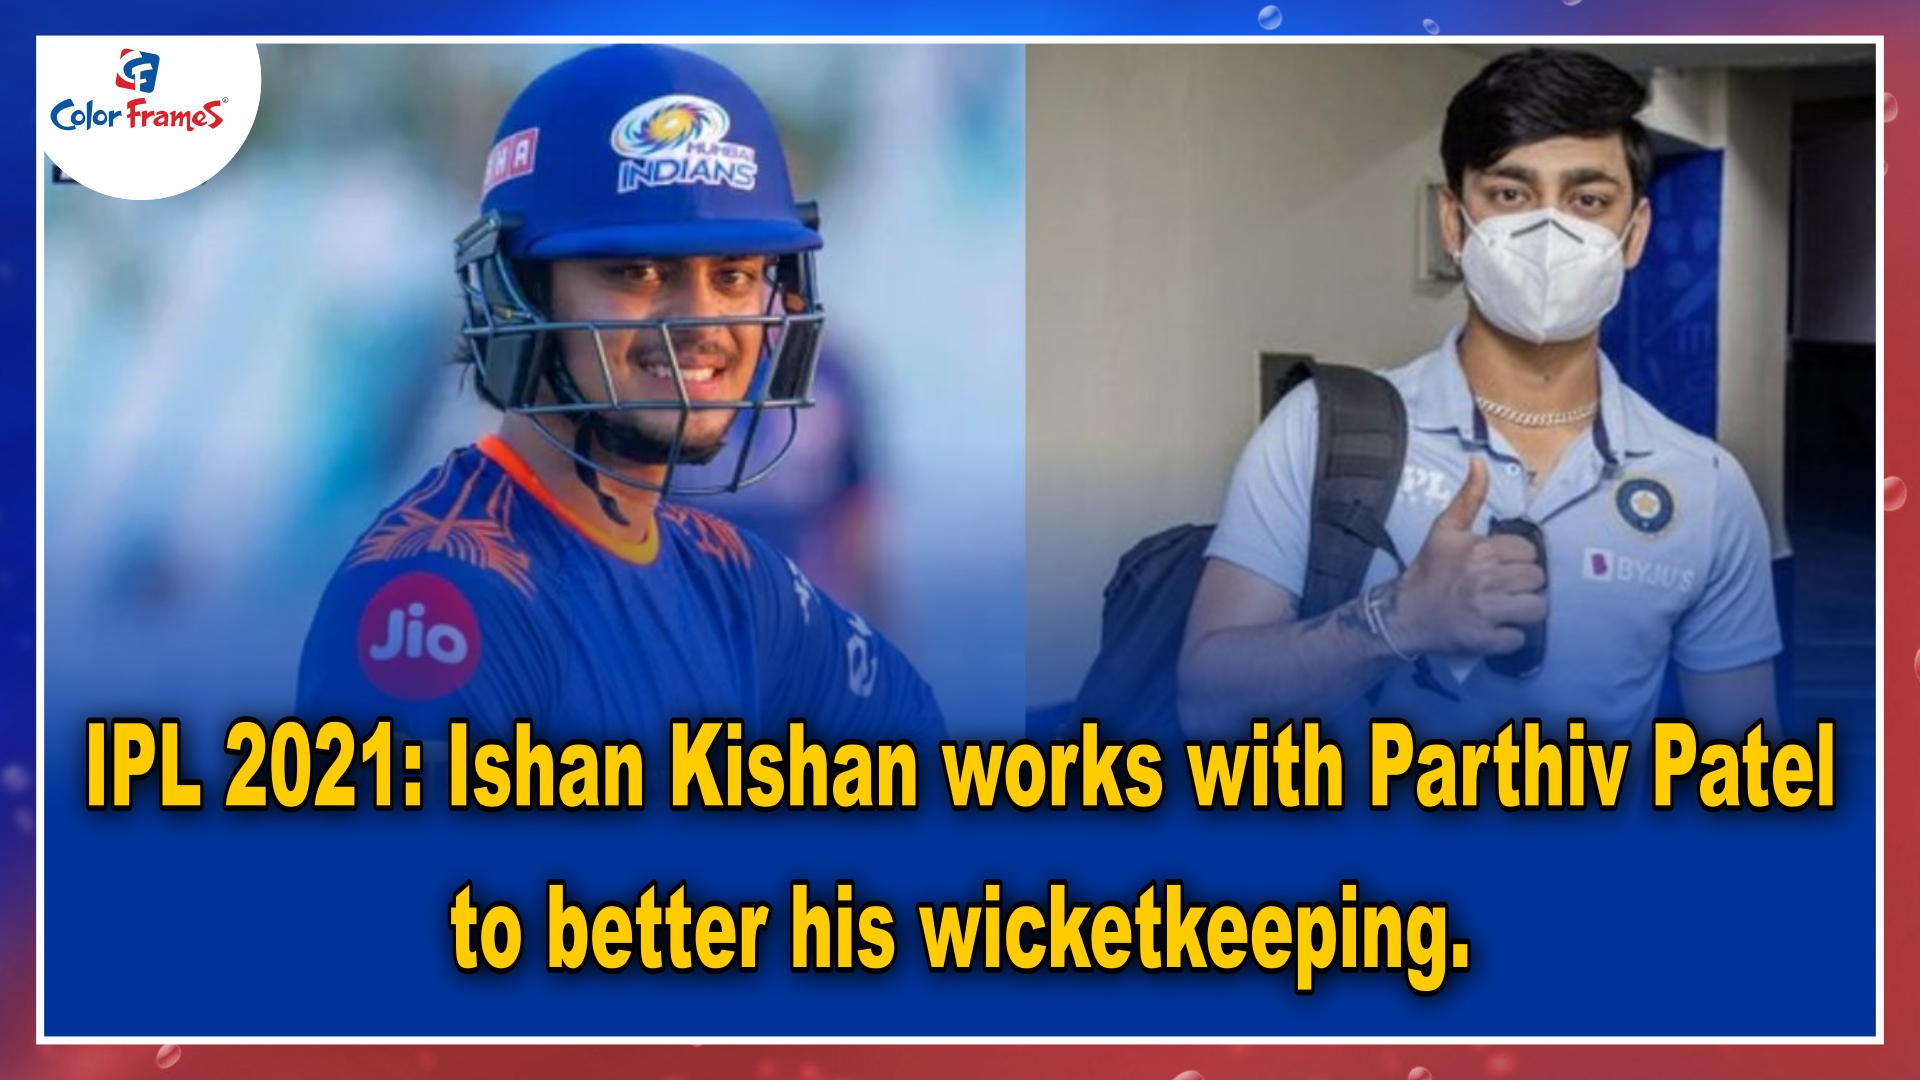 IPL 2021: Ishan Kishan works with Parthiv Patel to better his wicketkeeping.